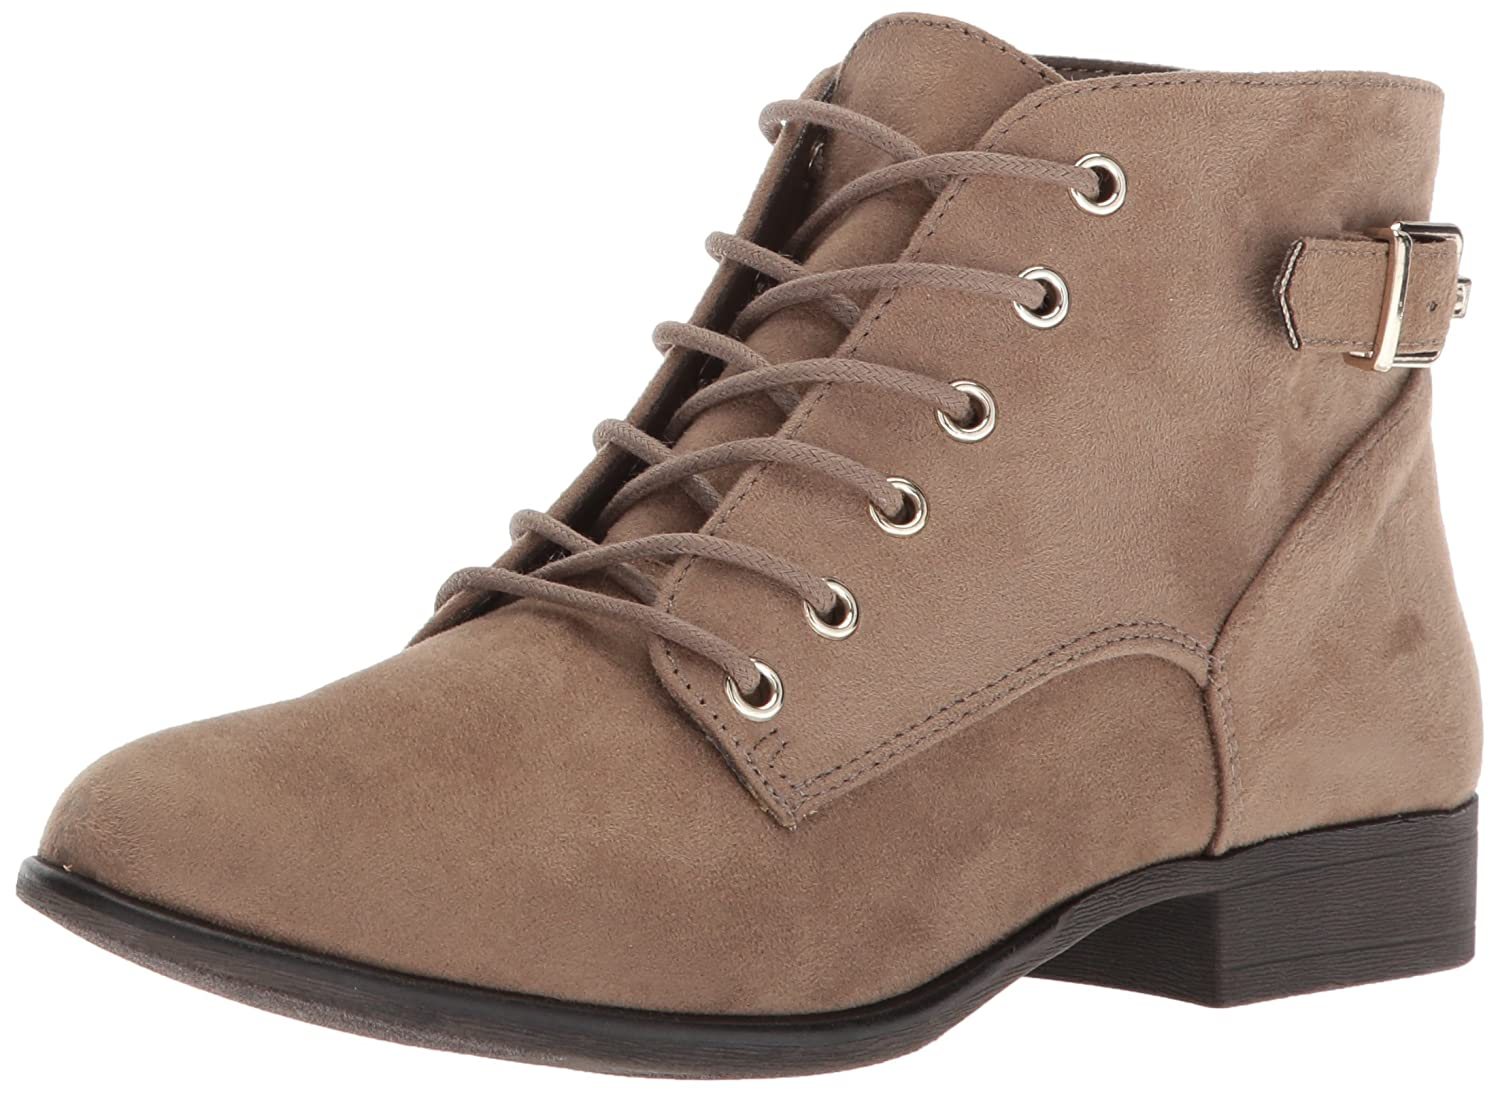 Call It Spring Women's Gitana Ankle Bootie B06ZYJ76Q2 10 B(M) US|Taupe